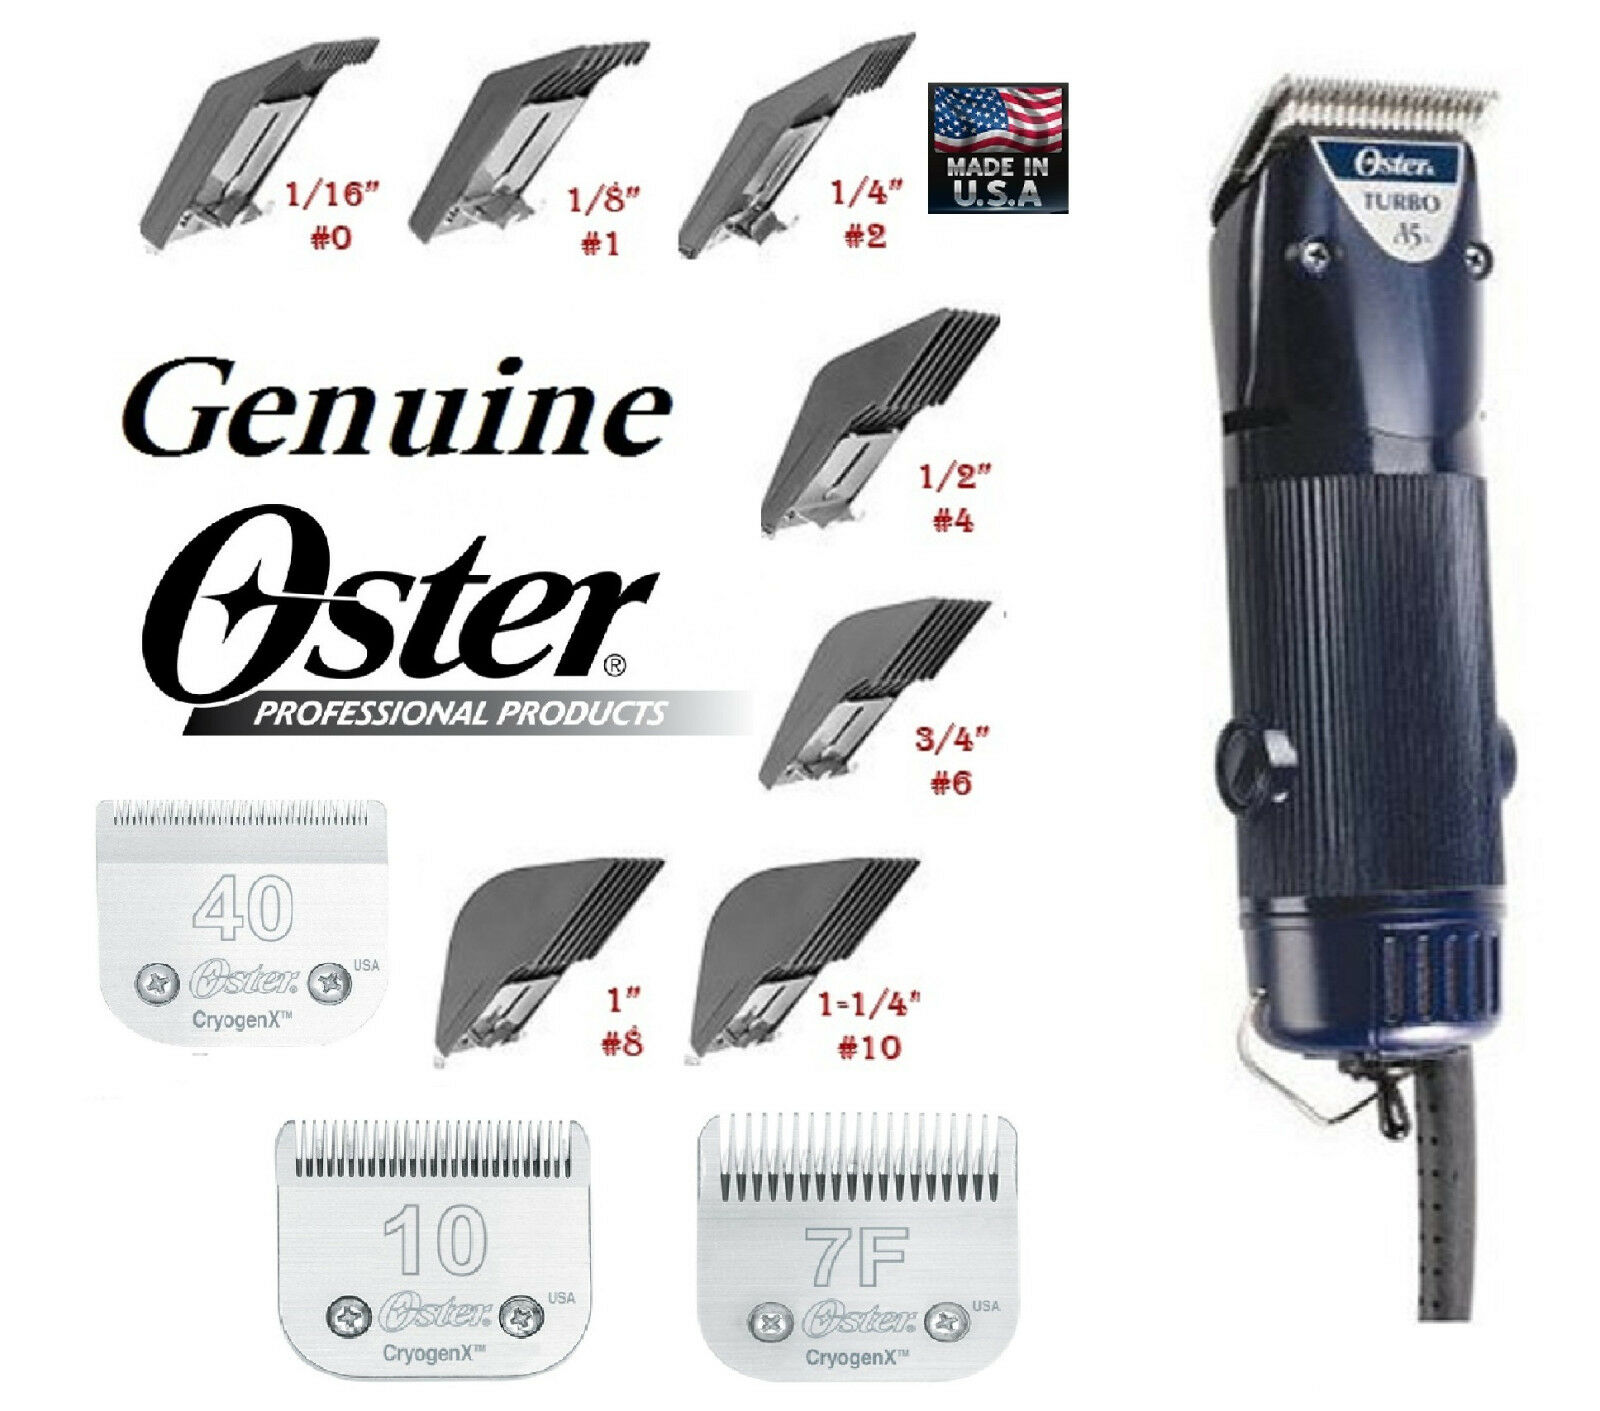 Oster A5 Turbo 1sp A5 Tosatrice Kit WCryogenx 10,40, 7F blades&7pc Guida Set